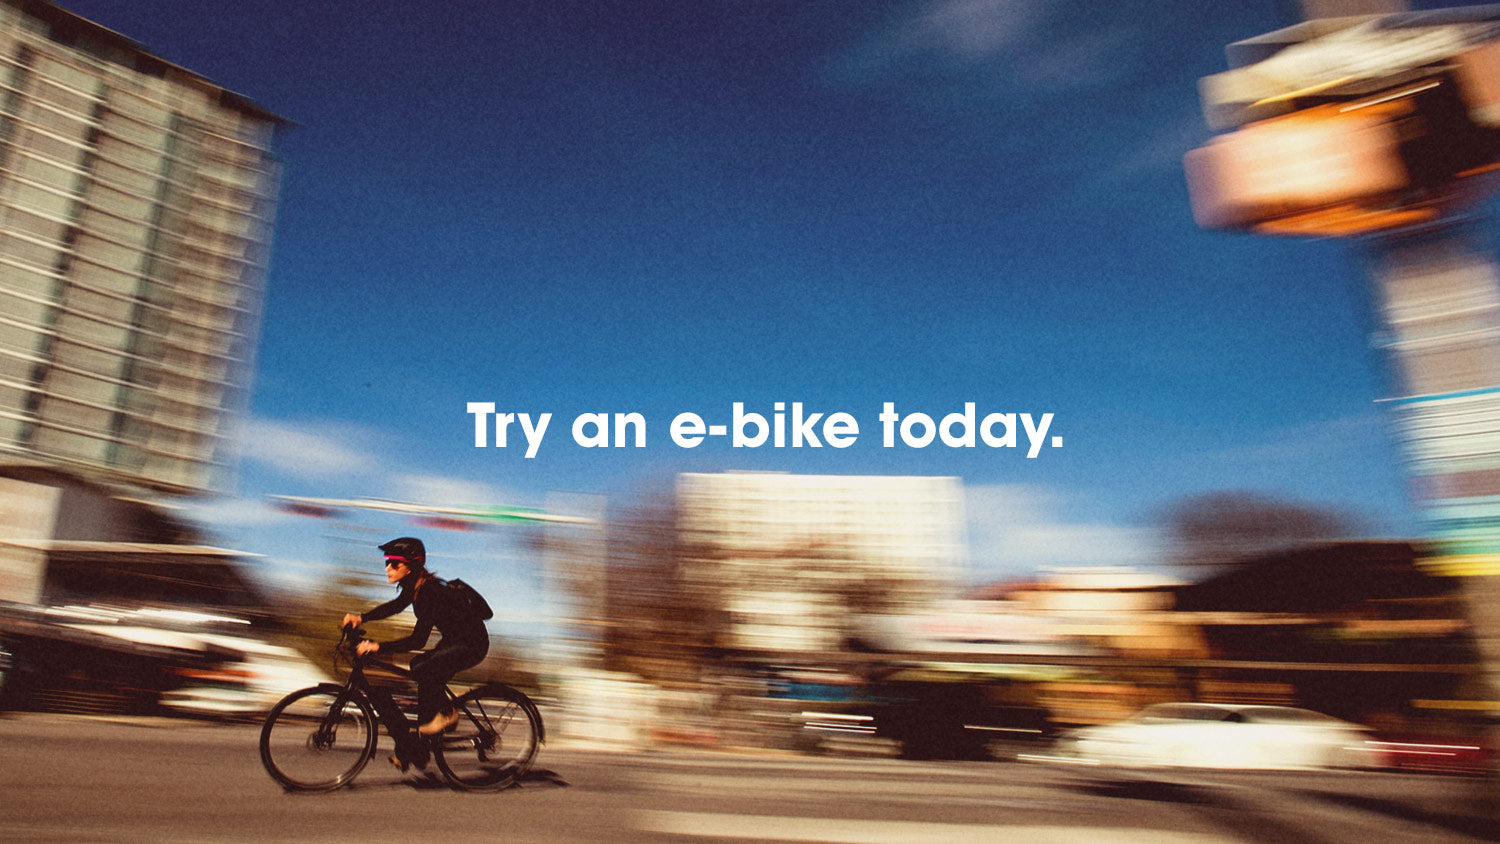 Try an e-bike today